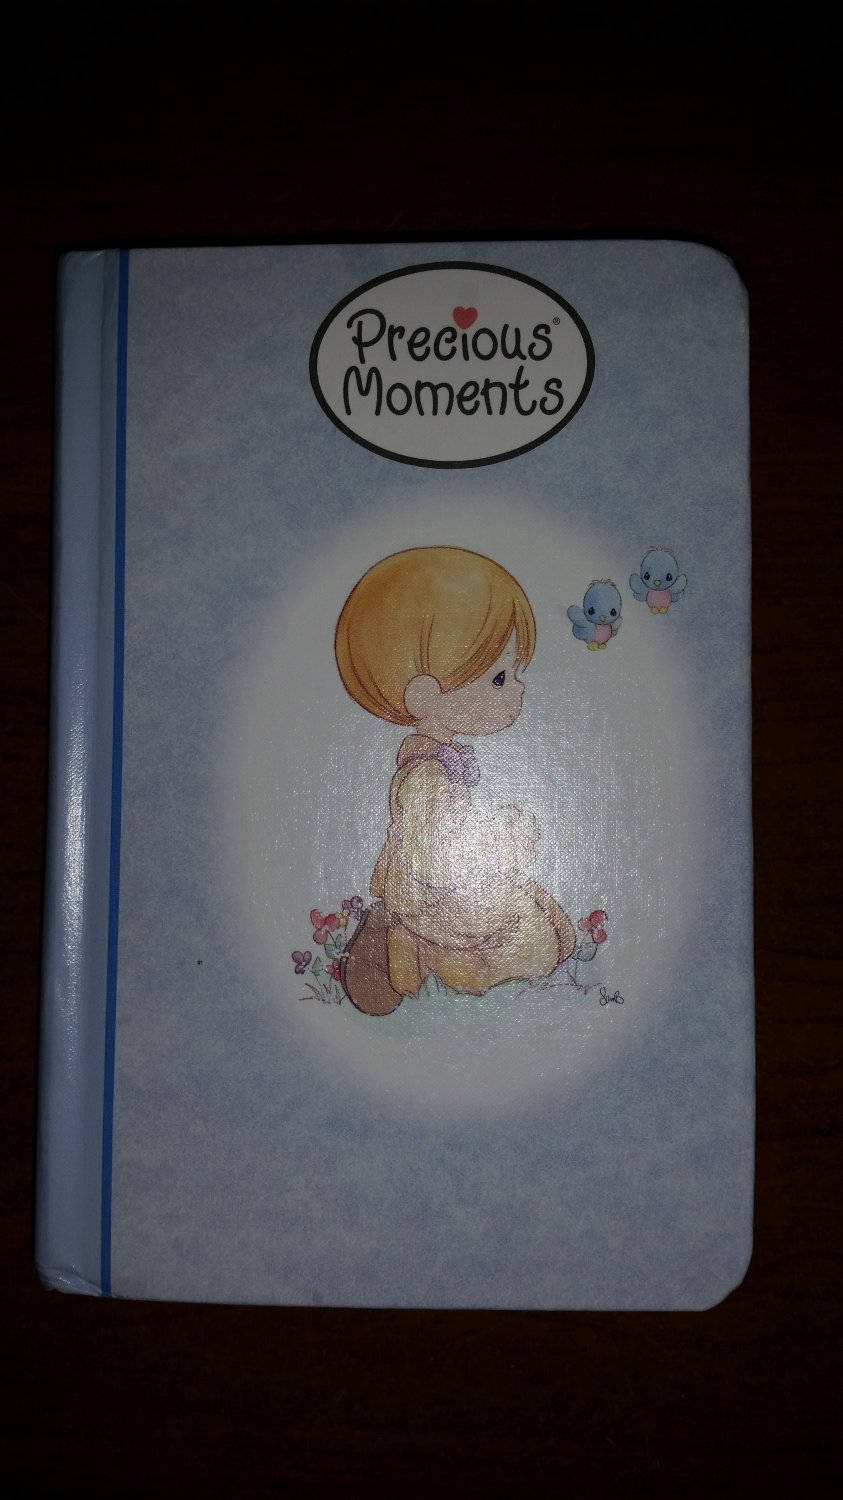 Precious Moments Bible Small Hands Edition New King James Version Hardcover!